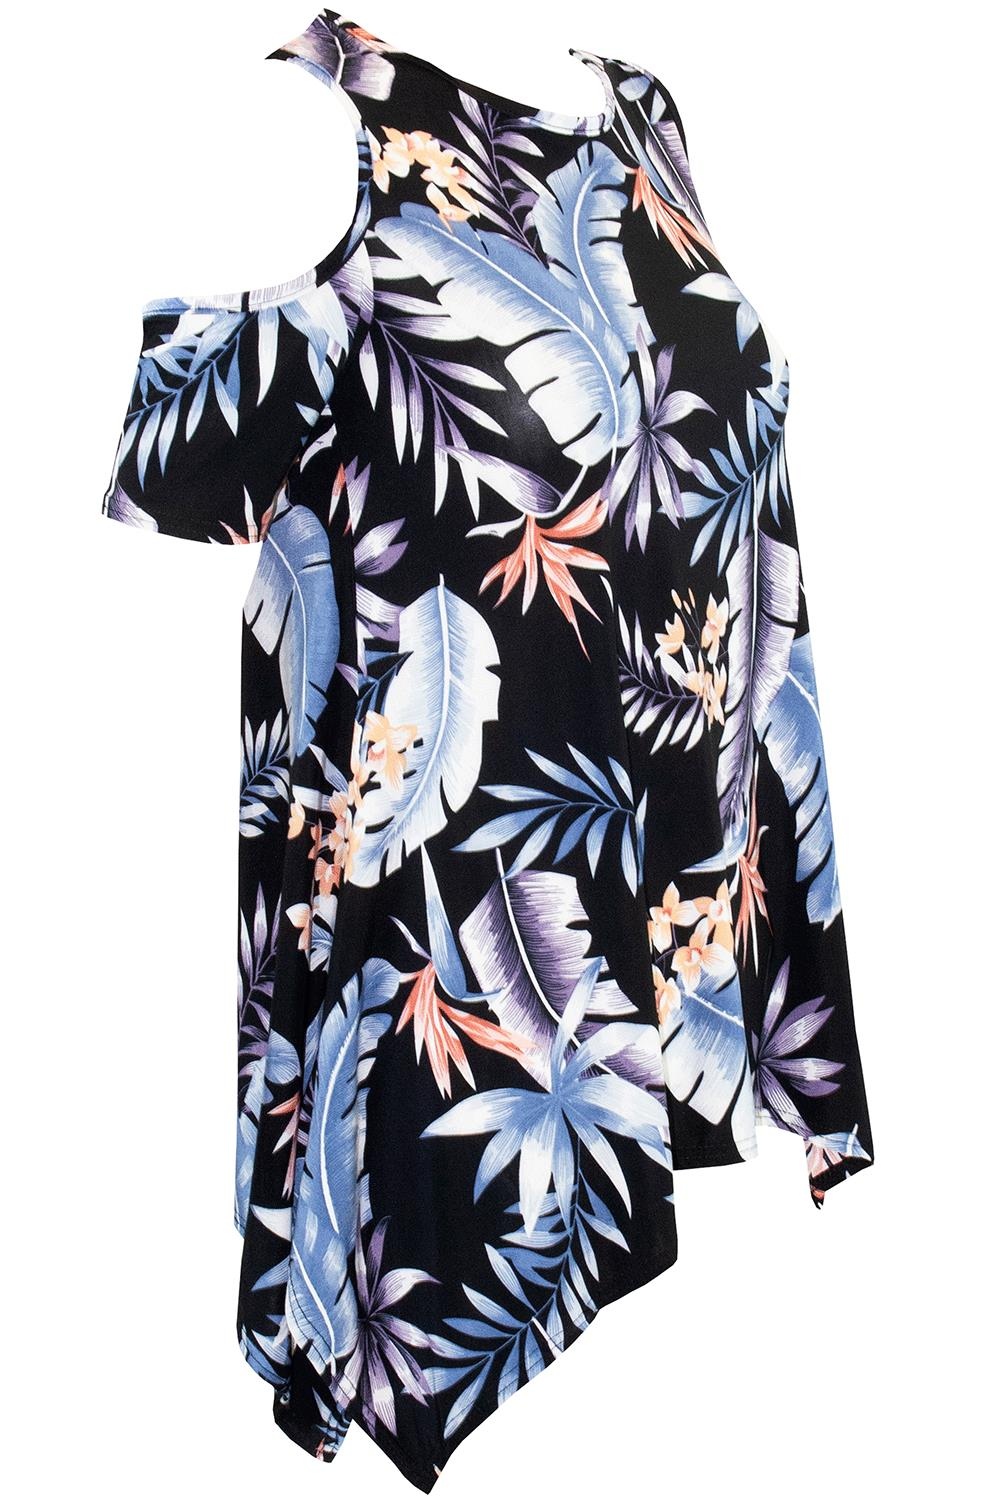 Women Ladies Floral Strappy Wide Long Sleeve Cold Shoulder Cut Out Hanky Hem Top